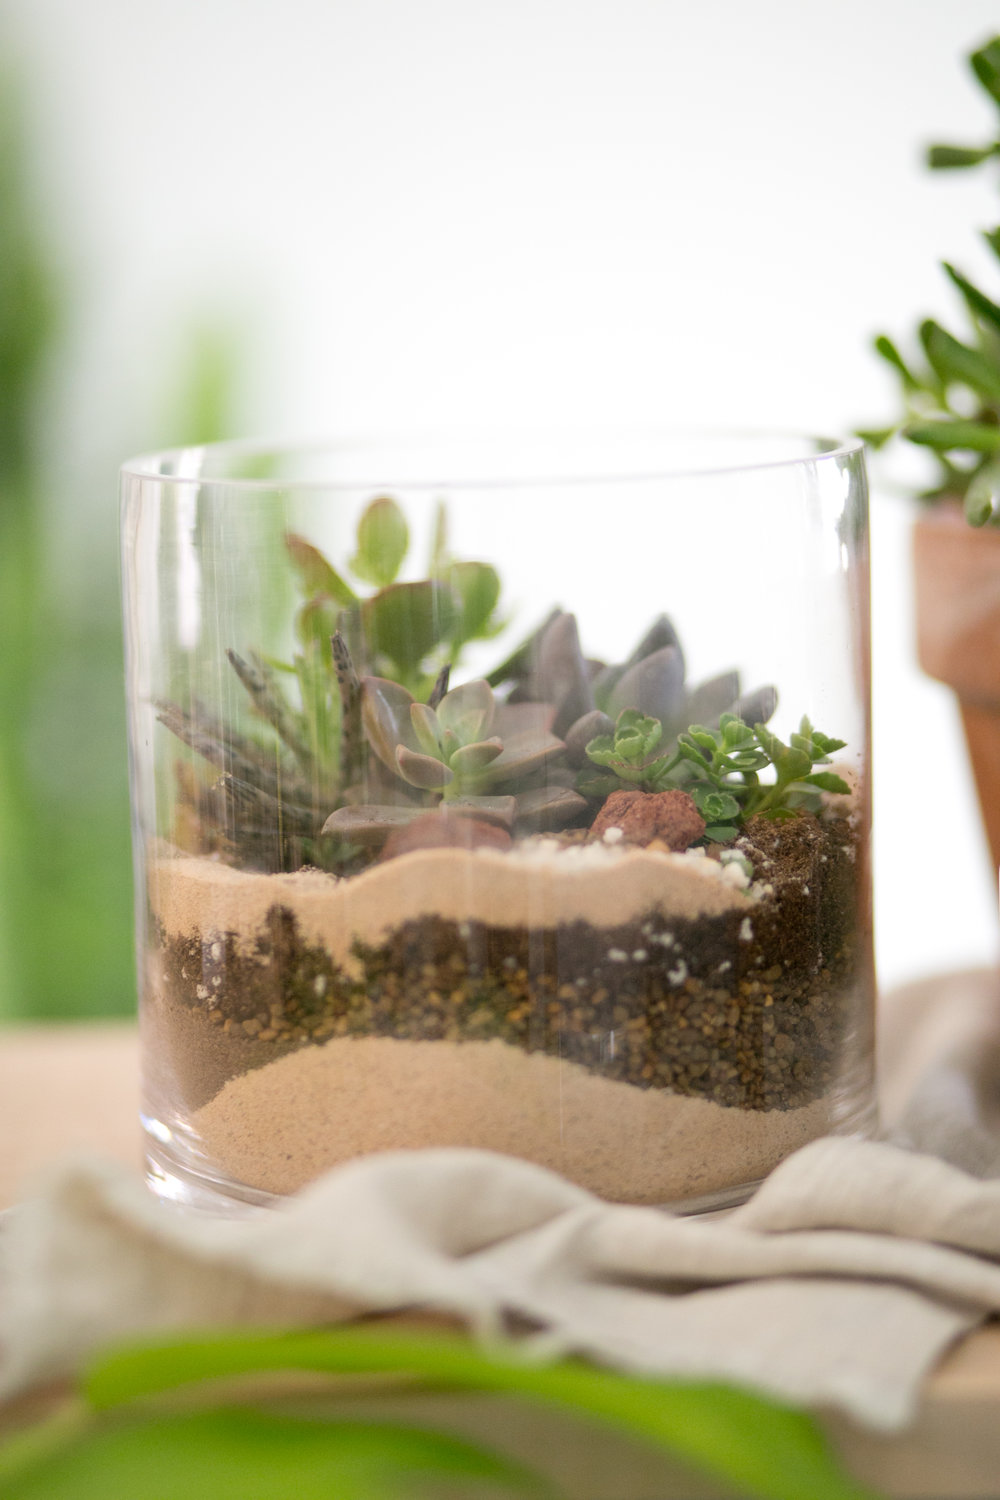 Layering with different types of media, such as soil, sand and rock, help keep your succulents from sitting in water, even in a pot or vase without holes.